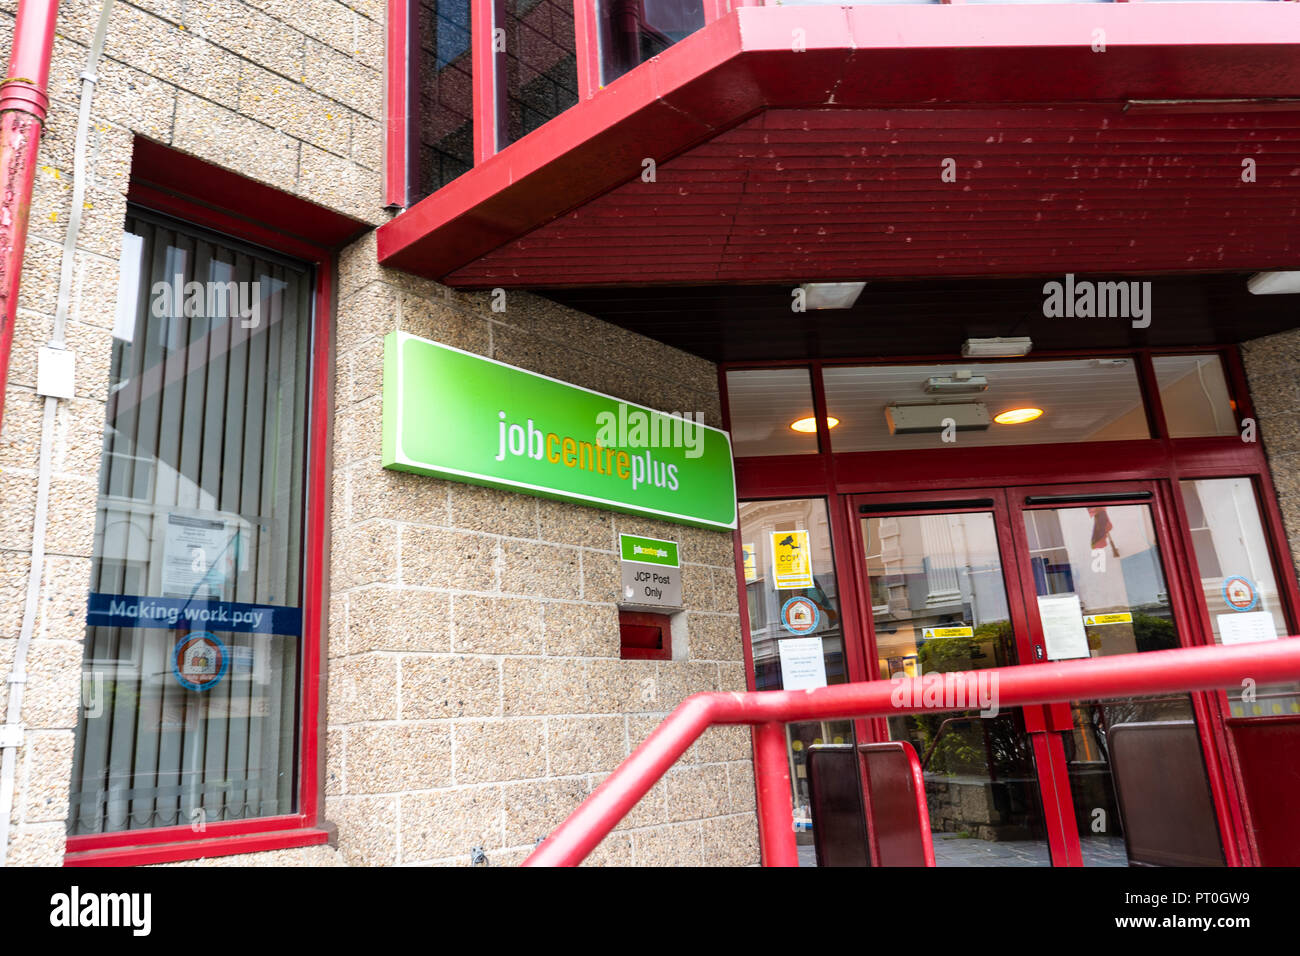 Job centre plus in the highstreet of Penzance, Cornwall - England Stock Photo